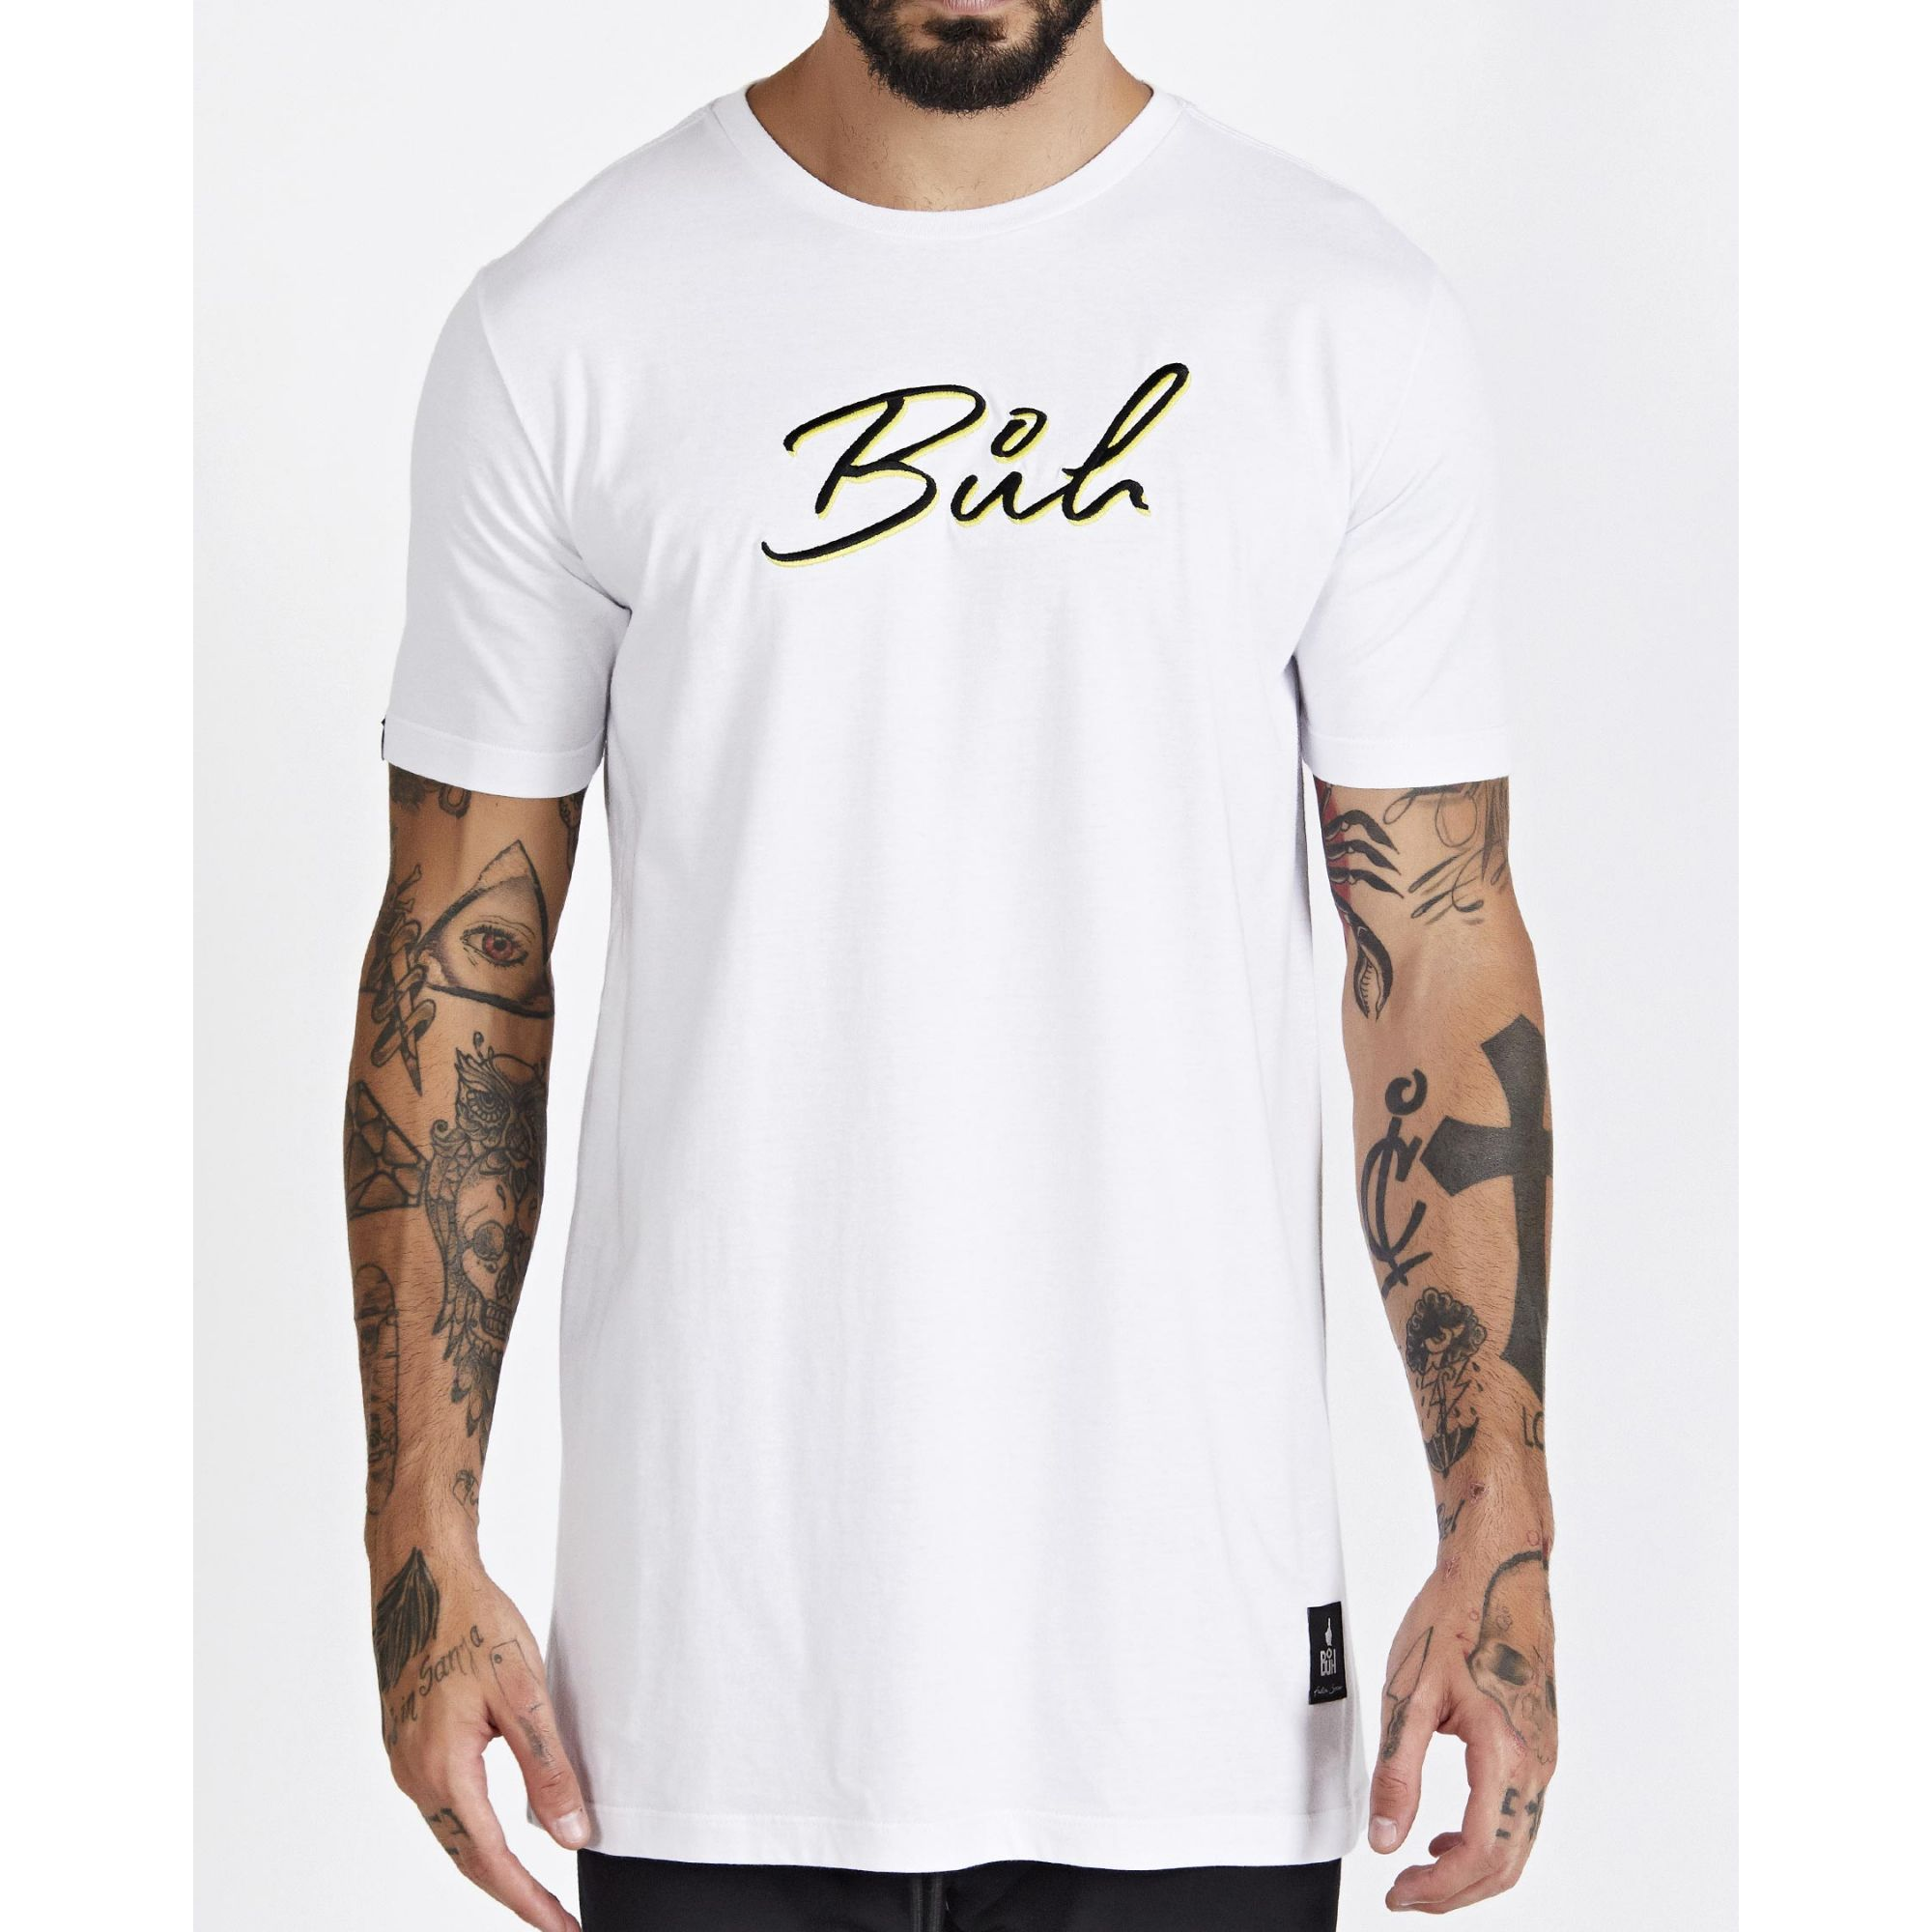 Camiseta Buh Bordado White